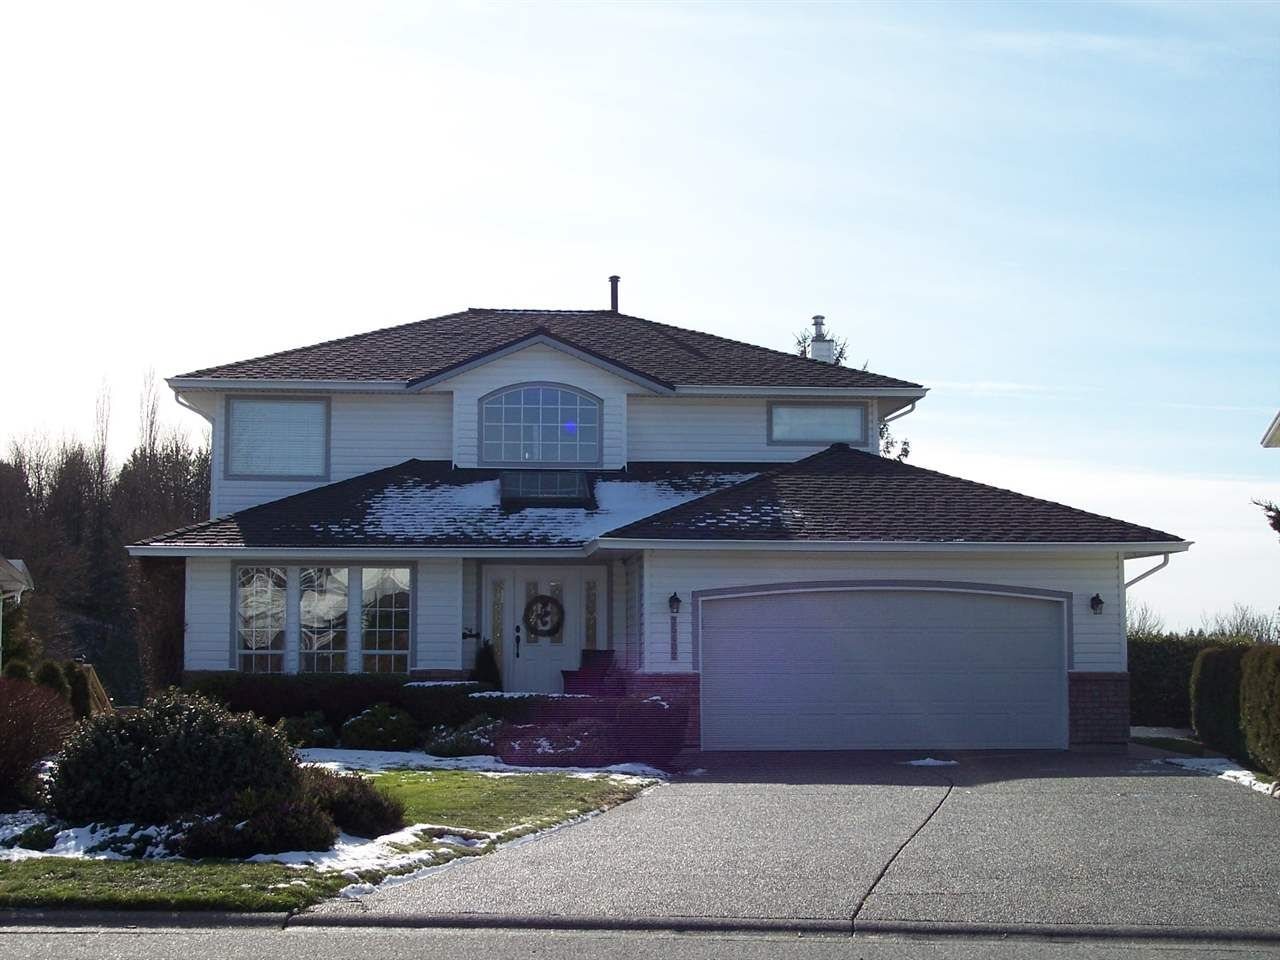 """Main Photo: 35402 LETHBRIDGE Drive in Abbotsford: Abbotsford East House for sale in """"Sandy Hill"""" : MLS®# R2240578"""